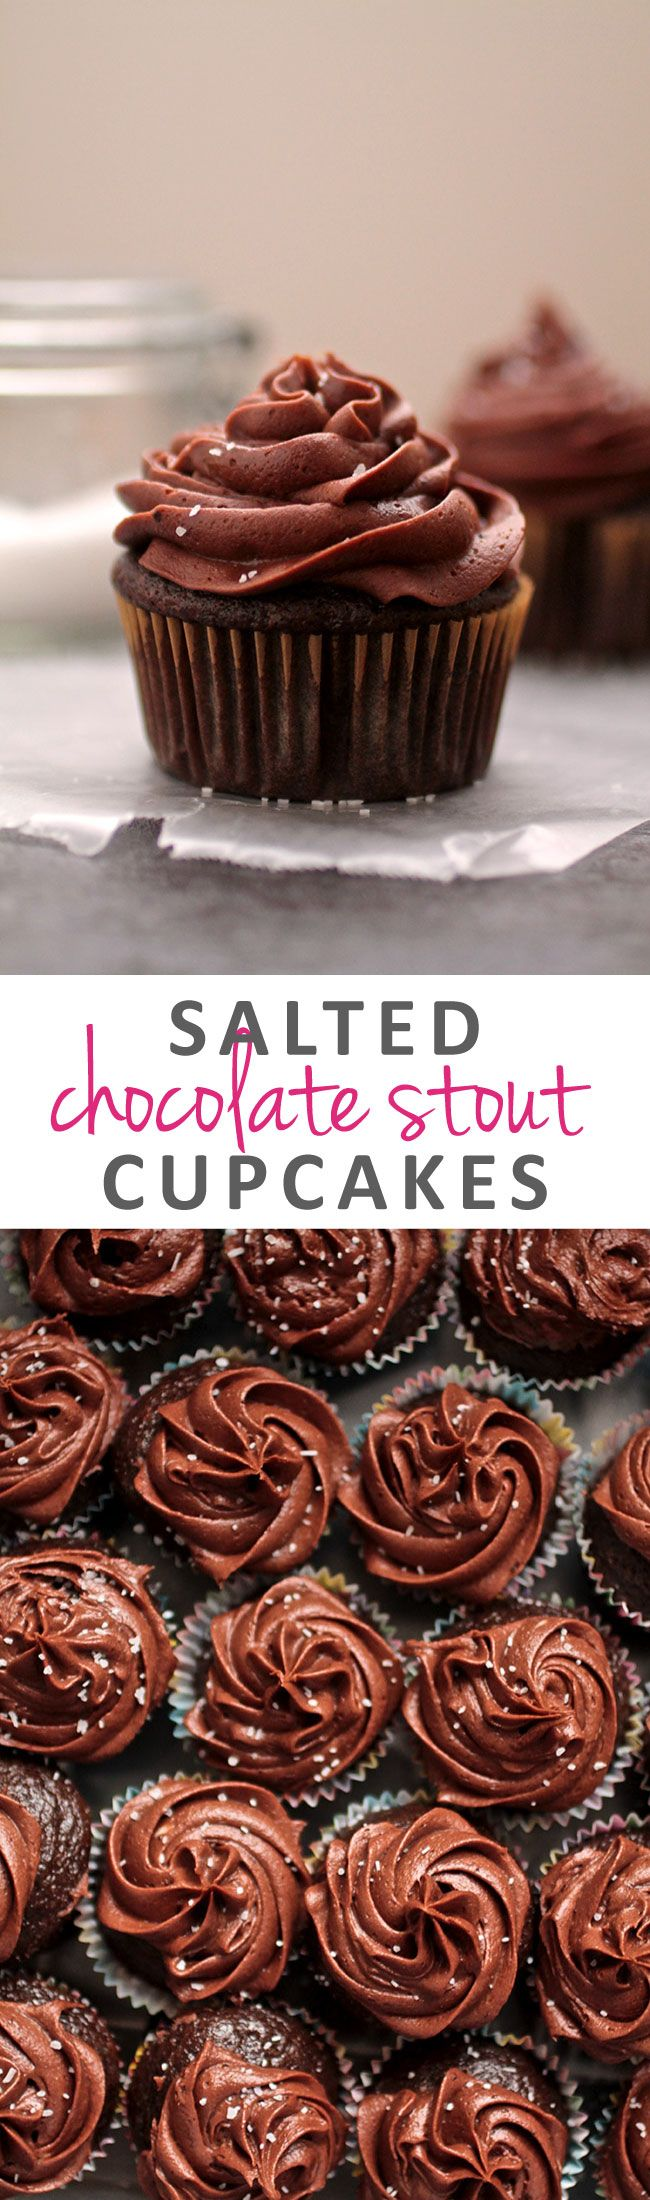 Salted Chocolate Stout Cupcakes | A classic chocolate cake recipe gets a makeover with rich chocolate stout and easy chocolate buttercream frosting topped with flakey sea salt.